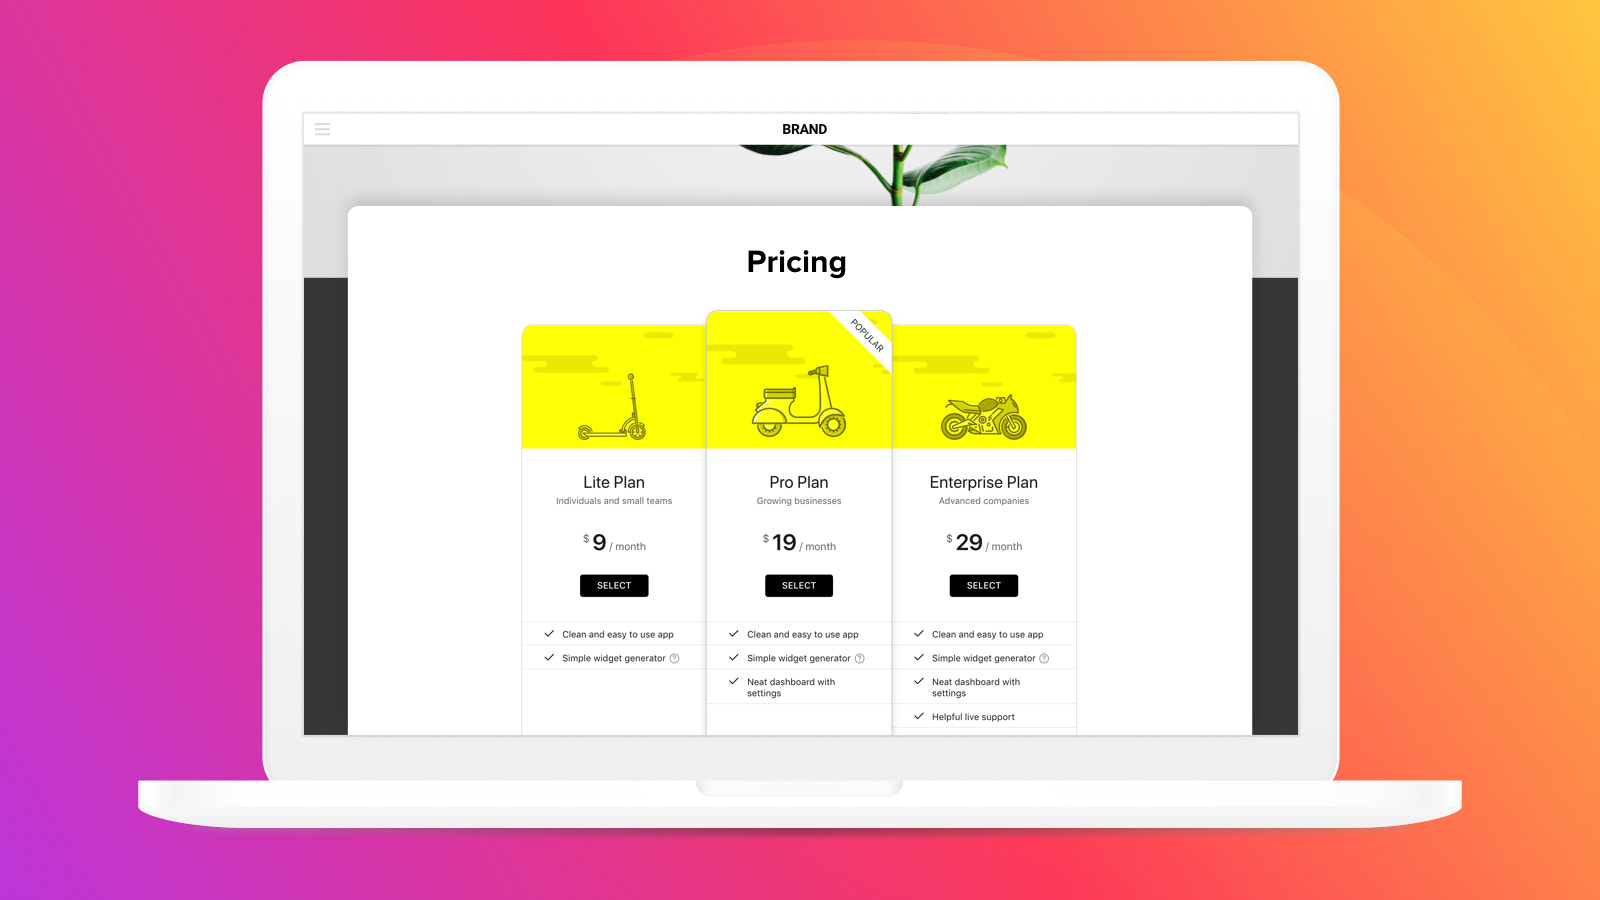 Enjoy the clean pricing design suitable for any website concept